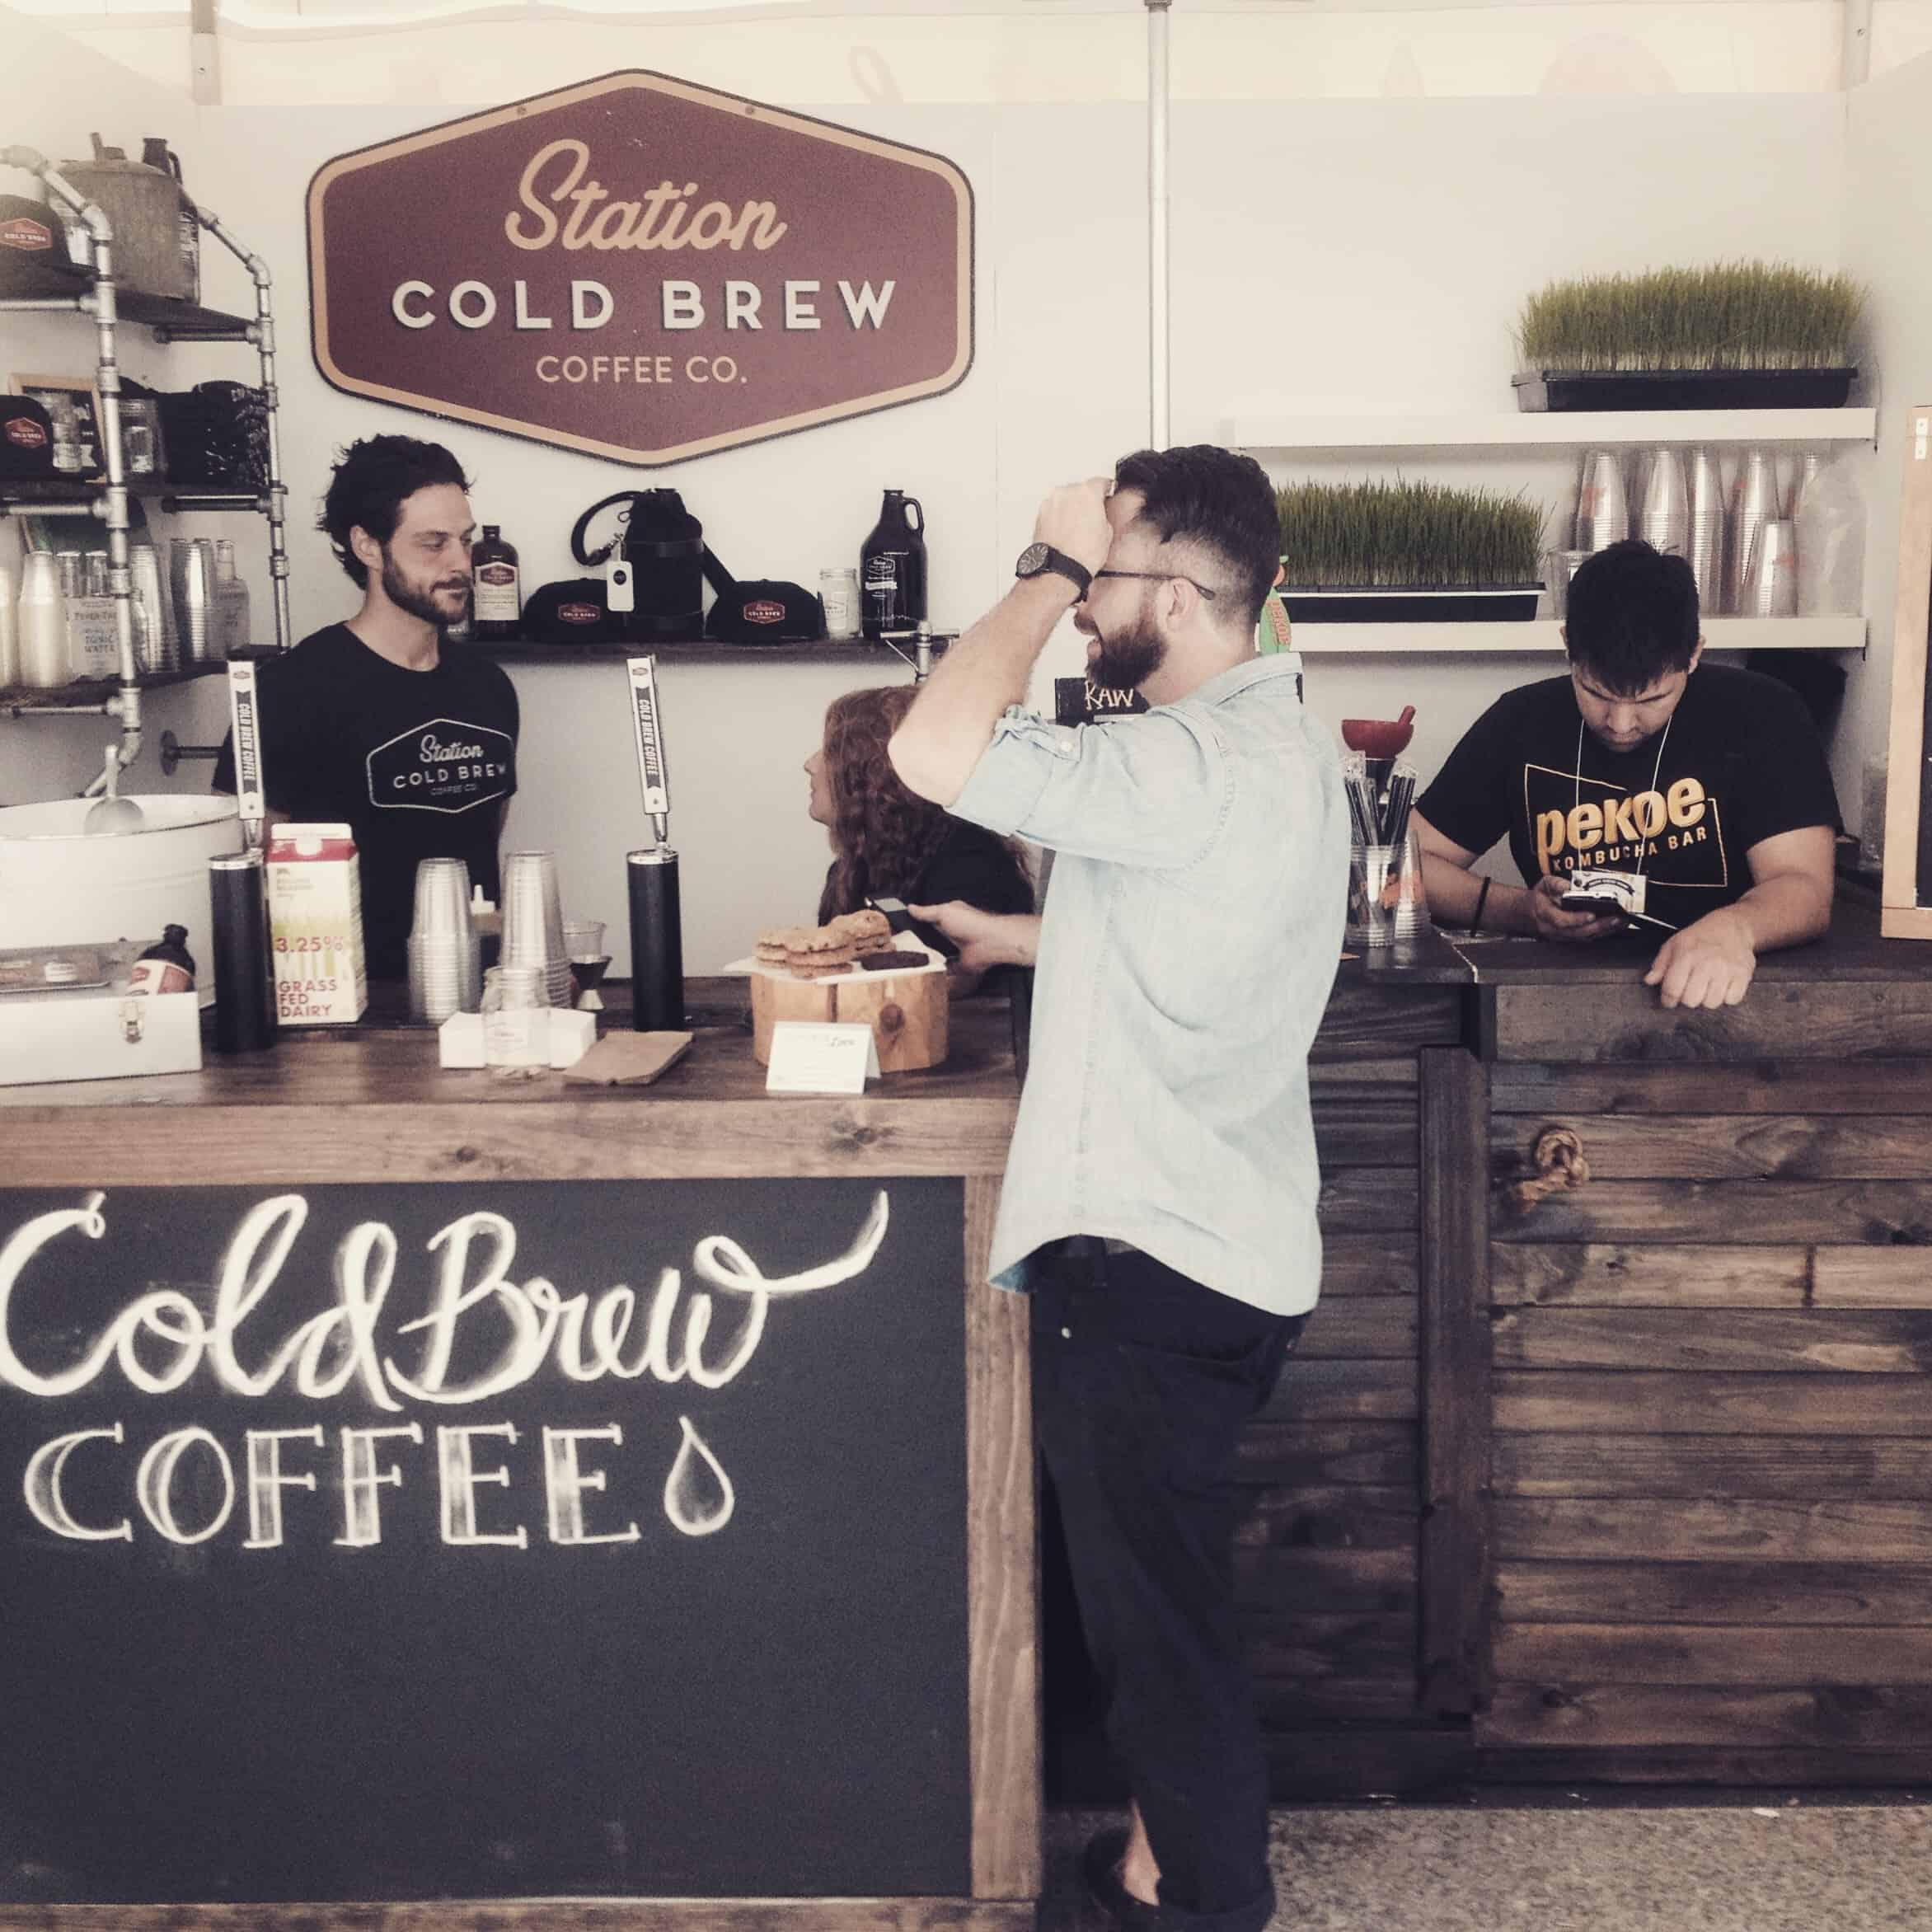 #FrontStreetFoods Meet The Makers: Station Cold Brew